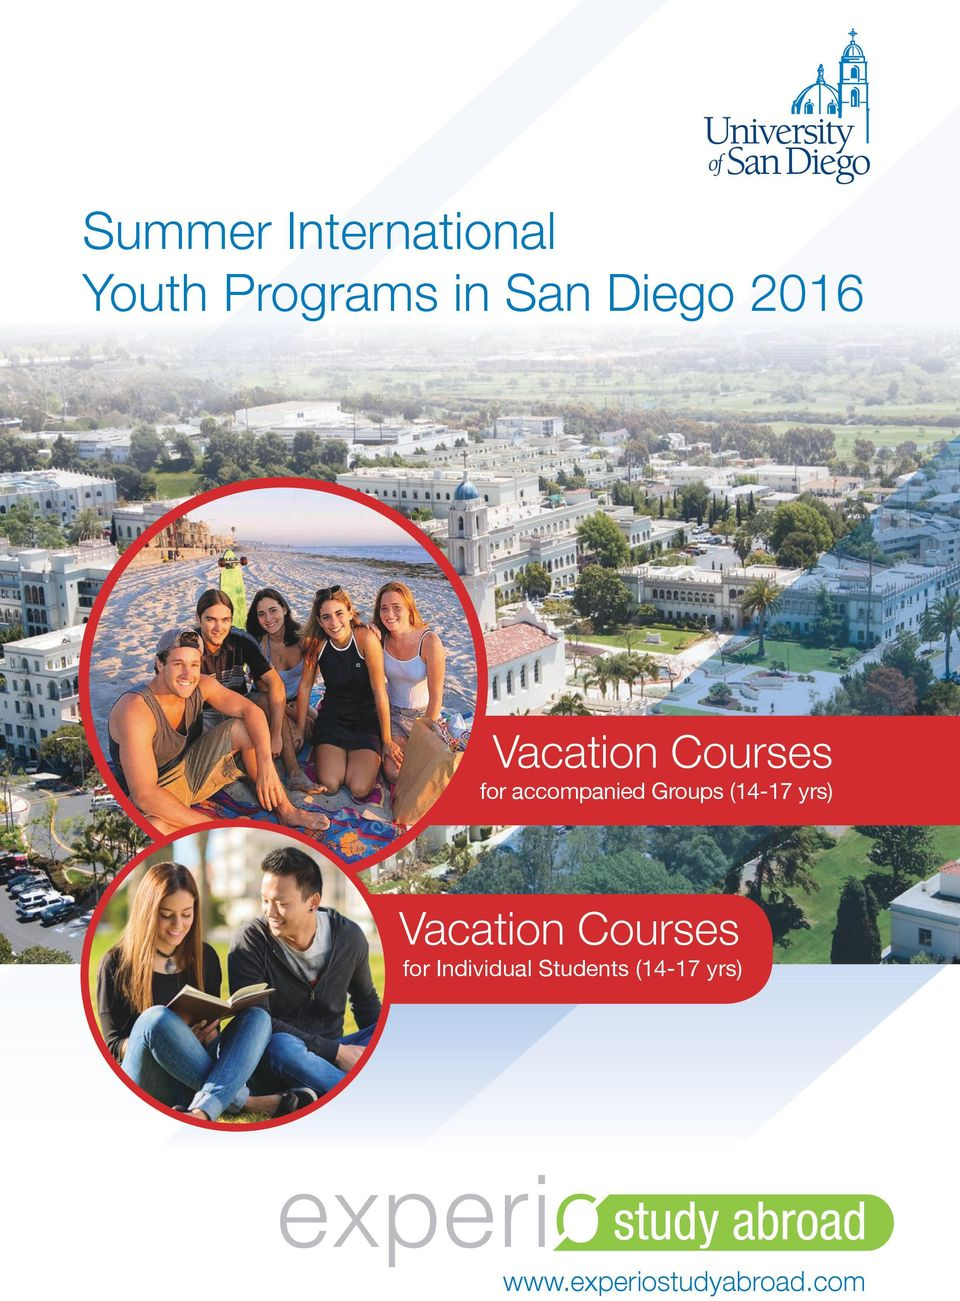 Groups (14-17 yrs) Vacation Courses for